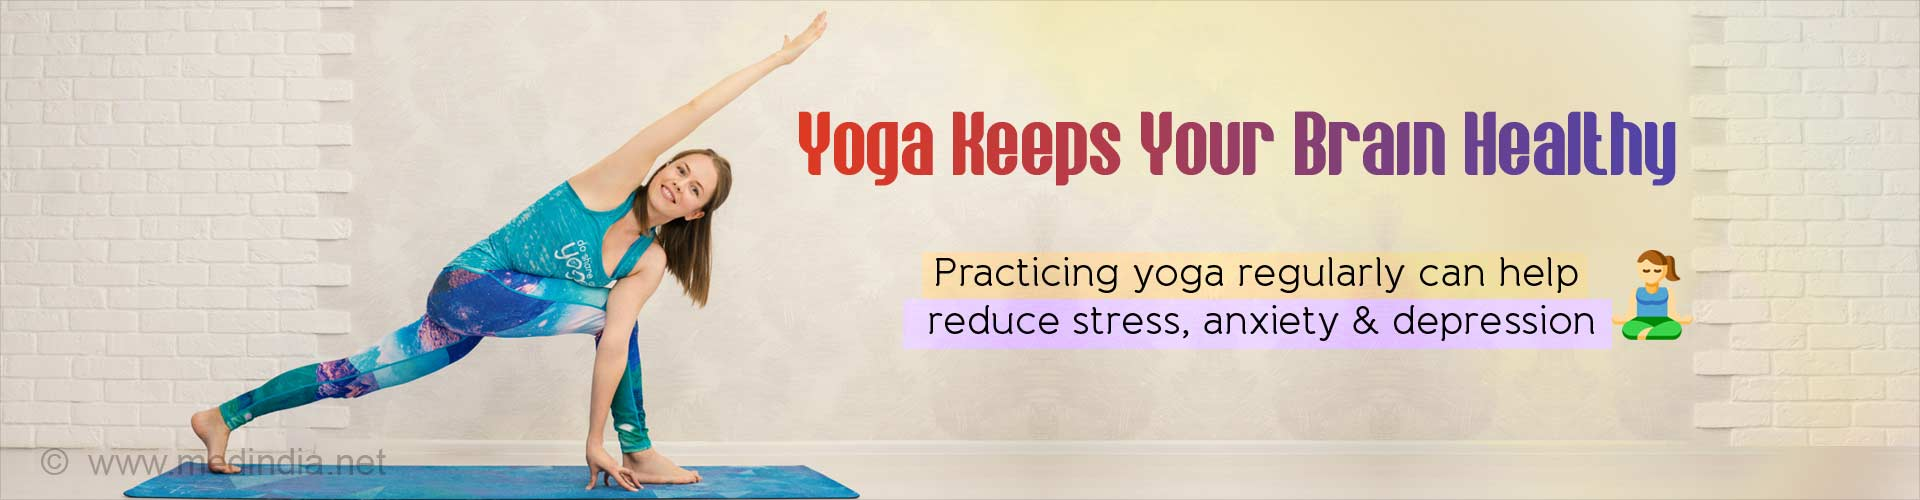 Yoga keeps your brain healthy. Practicing yoga regularly can help reduce stress, anxiety and depression.